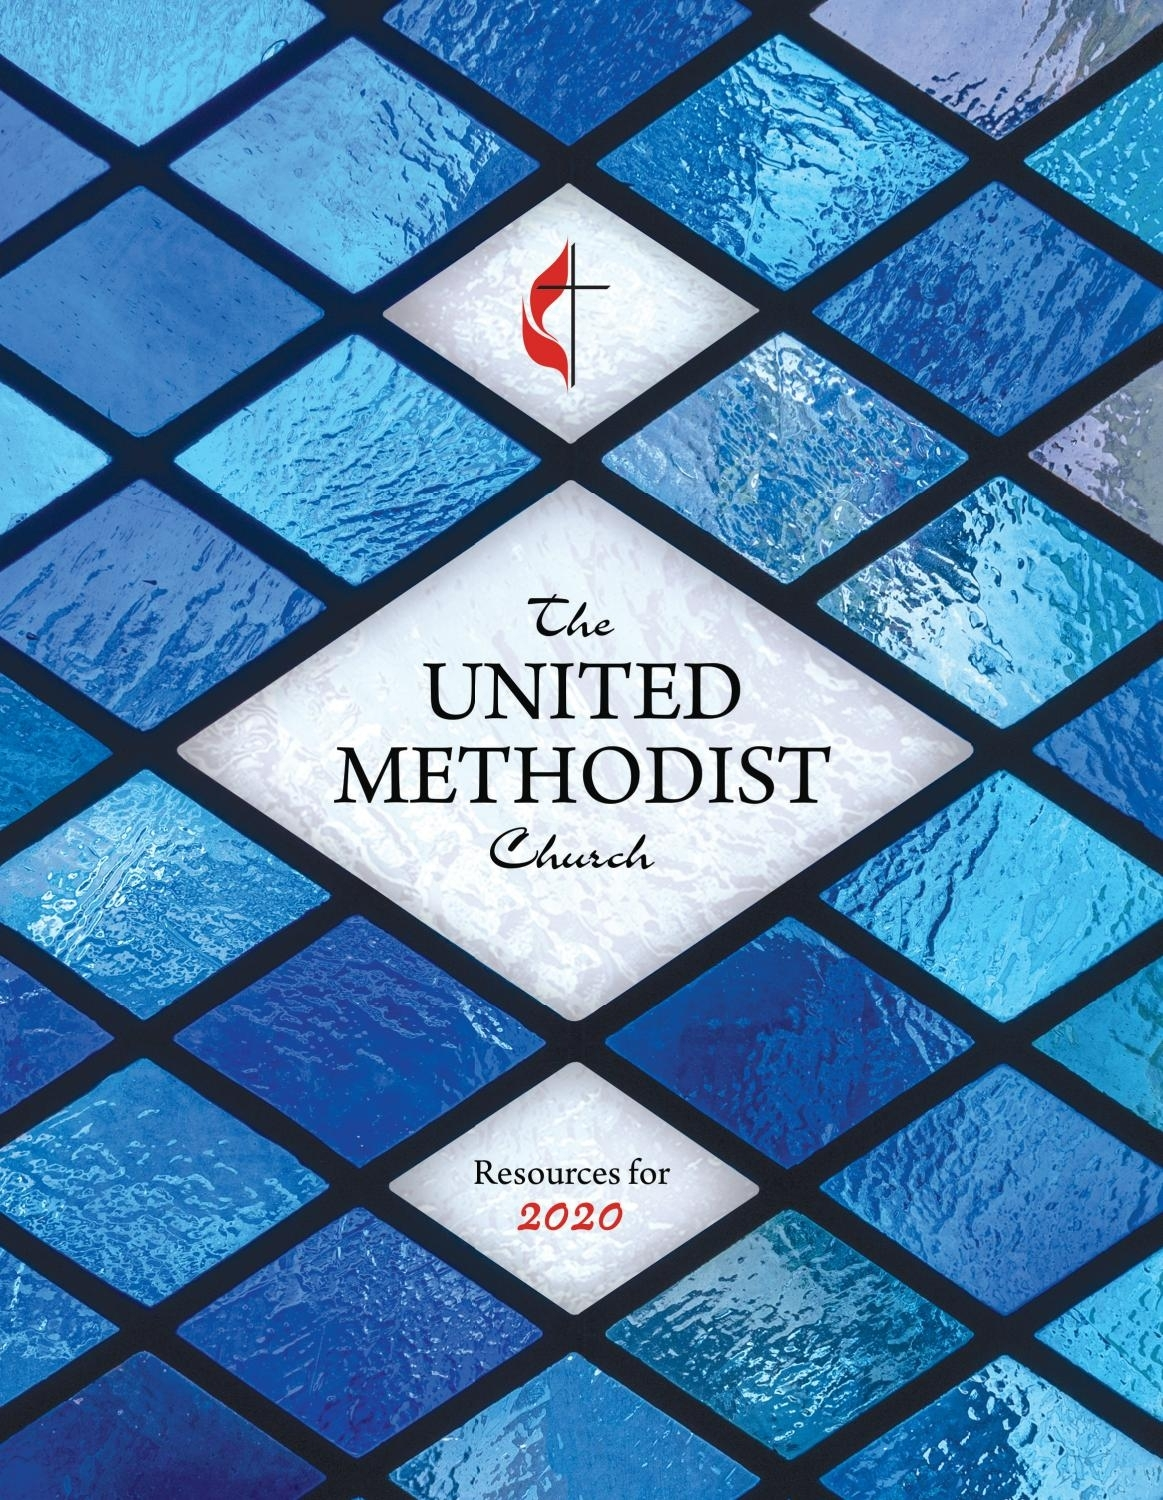 The United Methodist Church Resources For 2020 By United